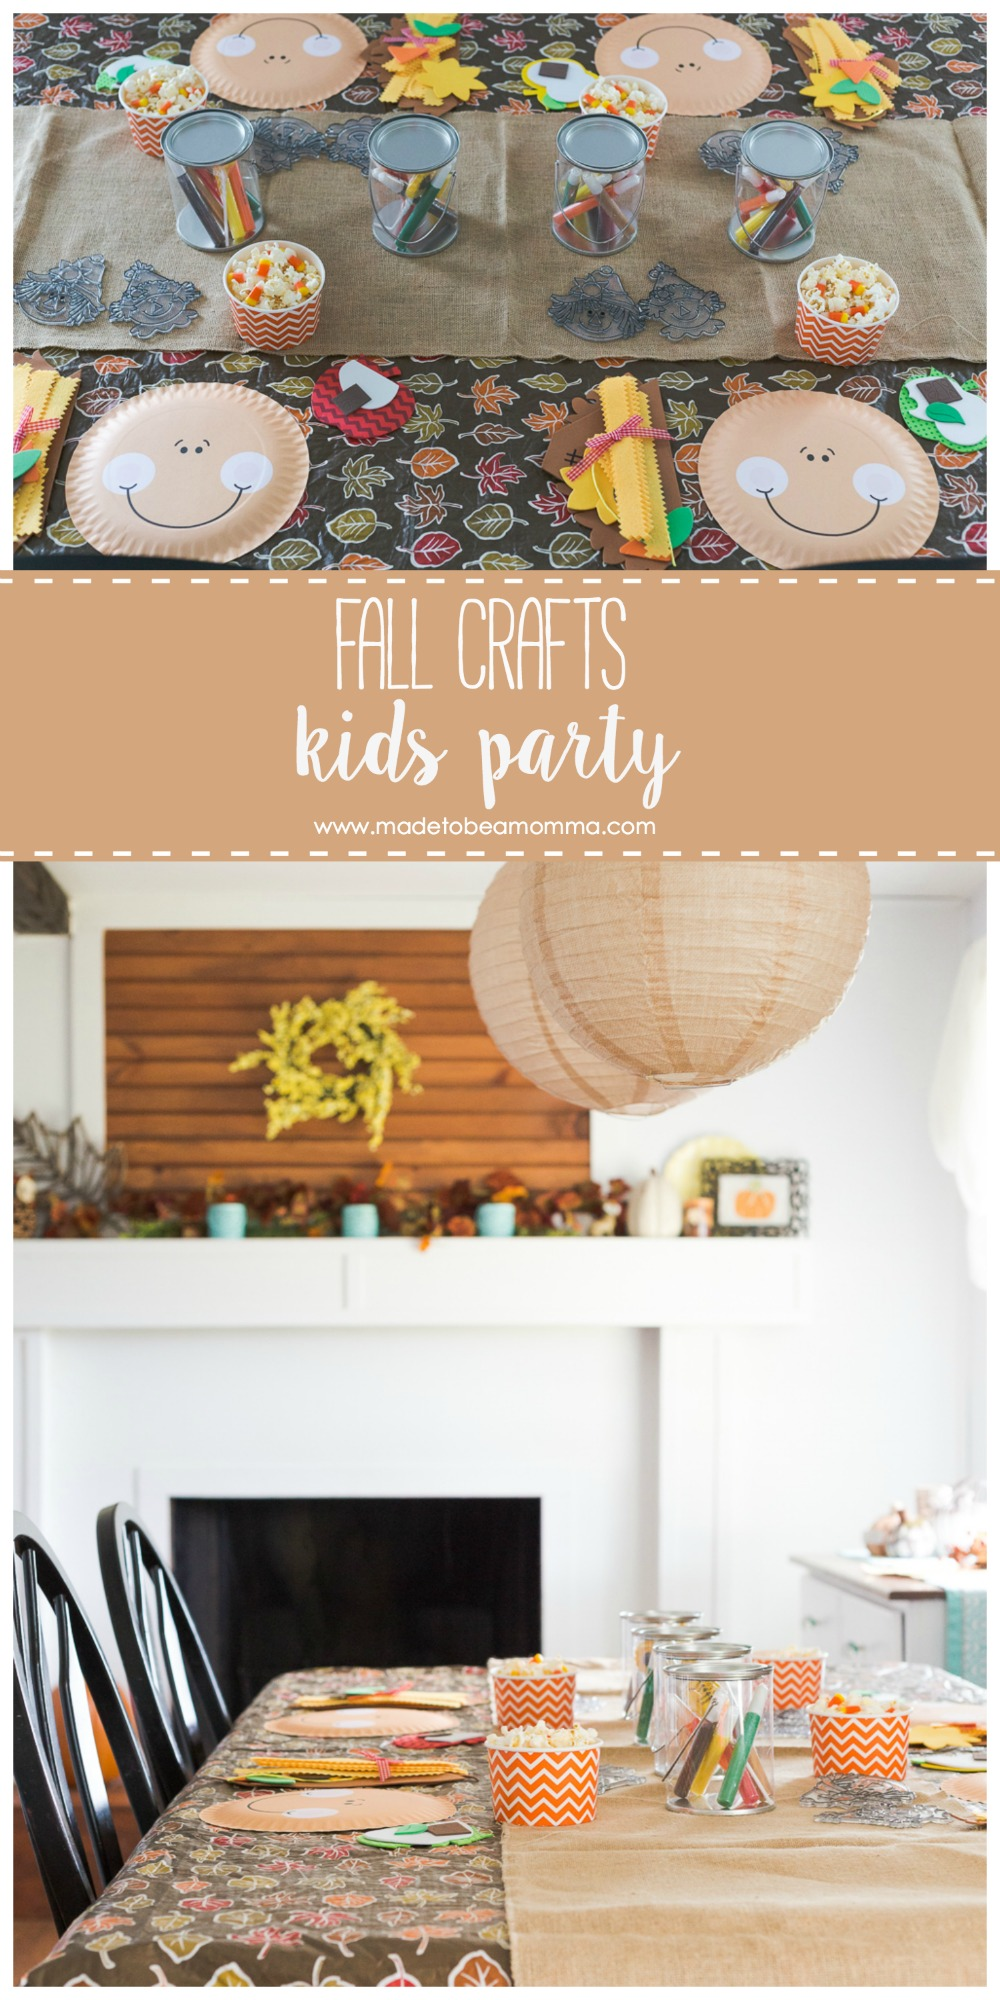 Fall Kids Craft Party: welcome the cooler weather with a day filled of crafts just for the kids! Scarecrows, apples and treats make this party one the kids will love!